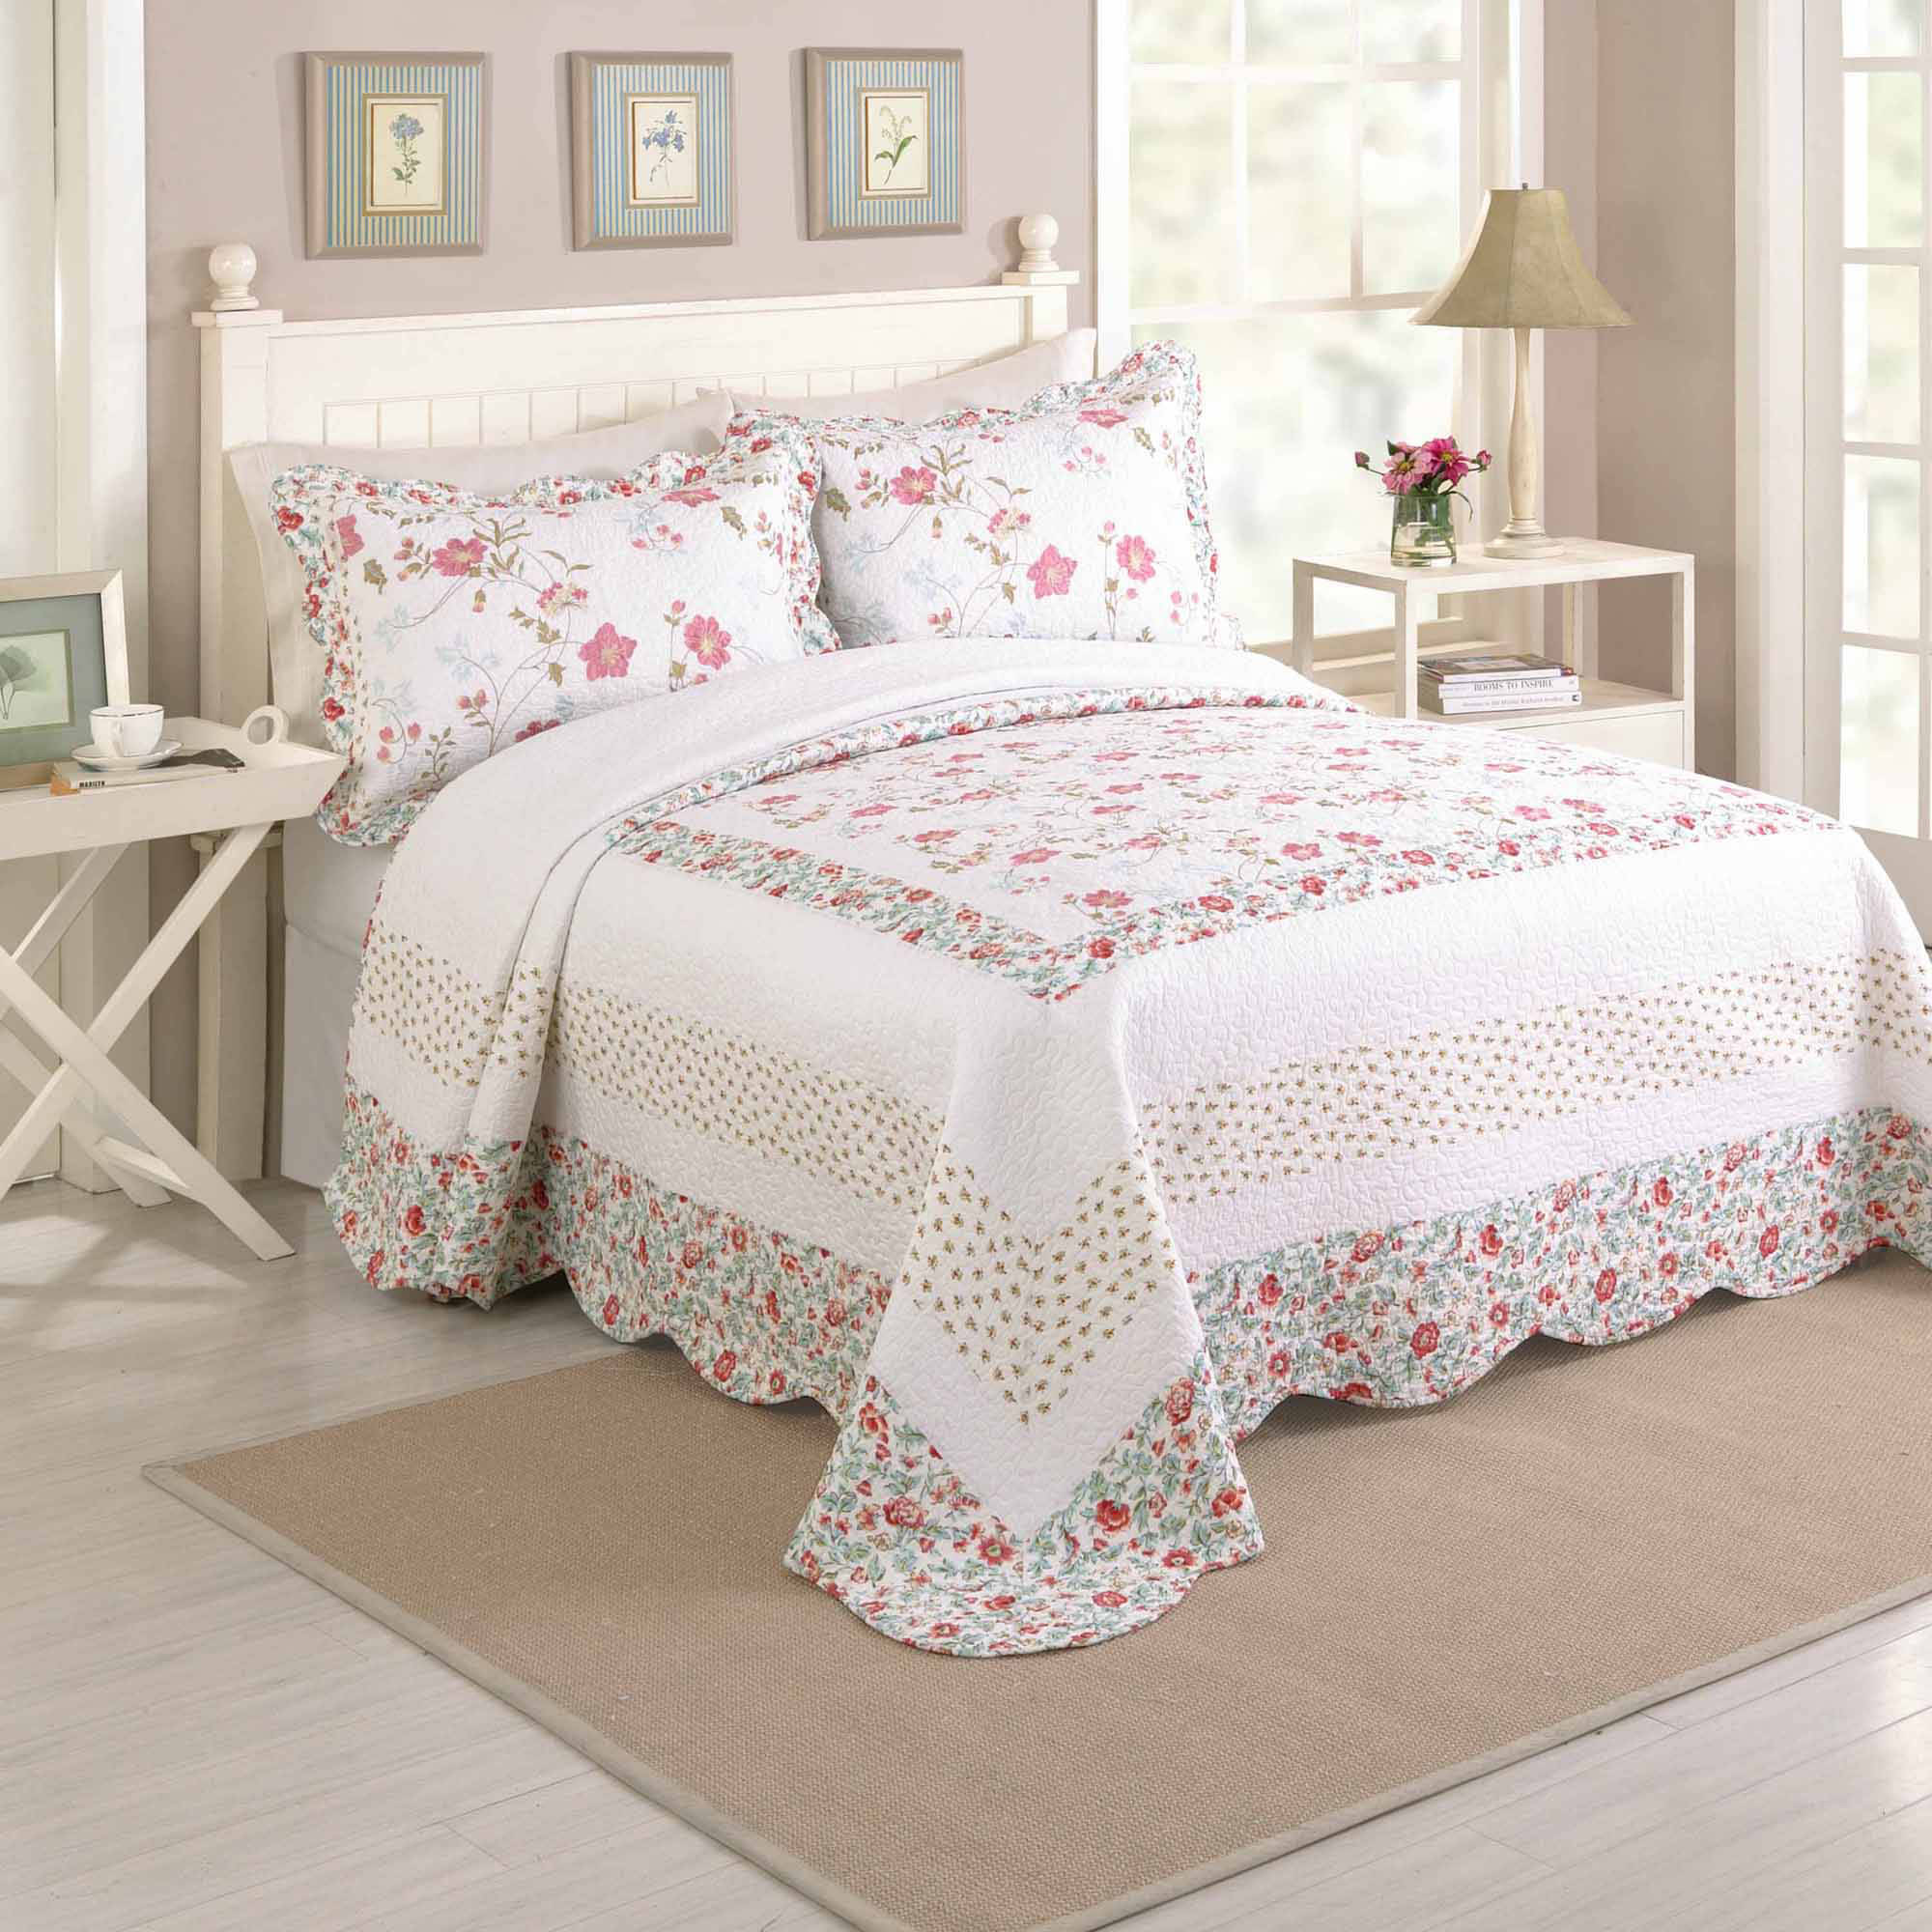 Better Homes and Gardens Fryda Bedspread